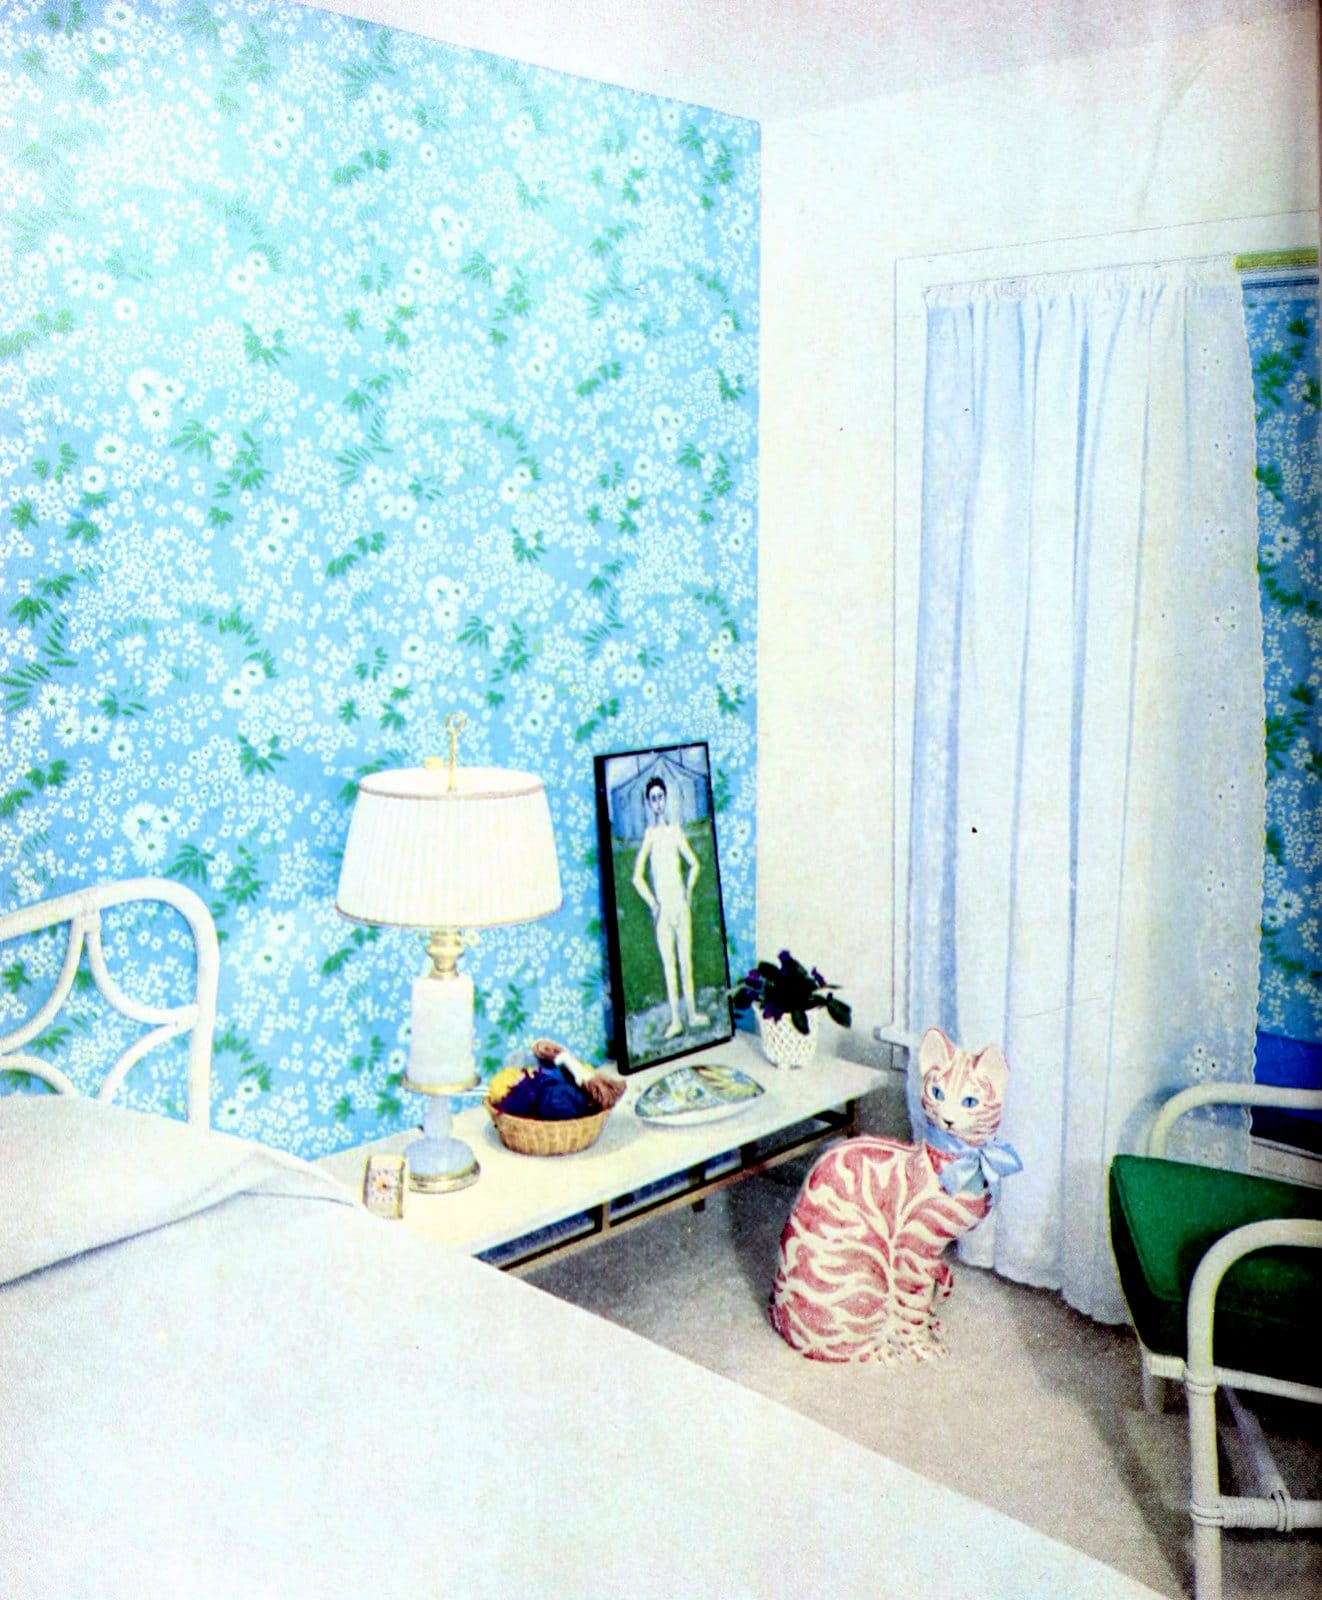 Bright blue retro floral bedroom wallpaper from the fifties